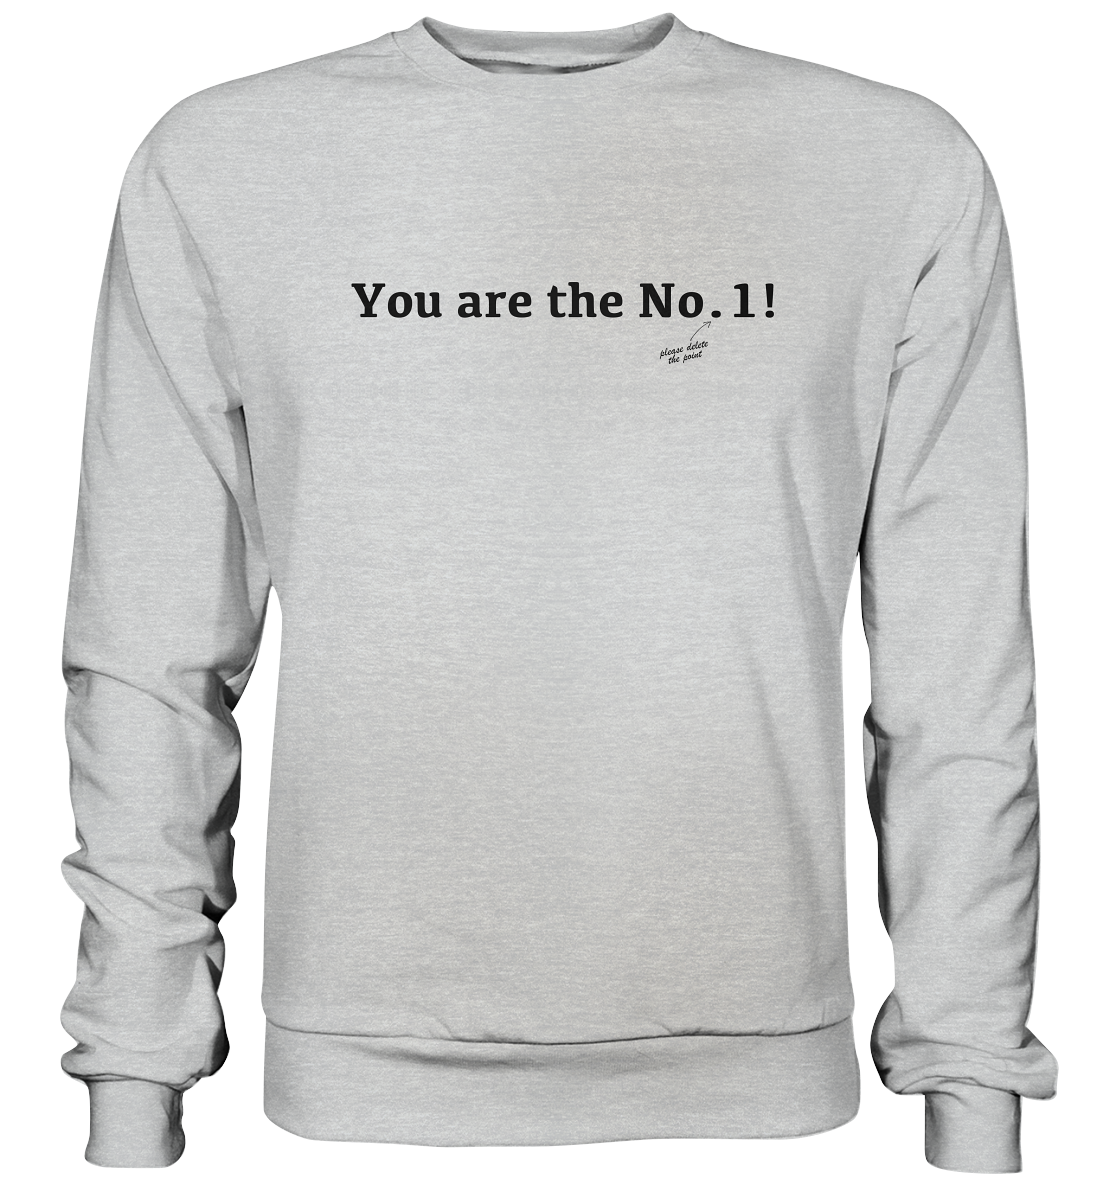 You are the No. 1! - Premium Sweatshirt